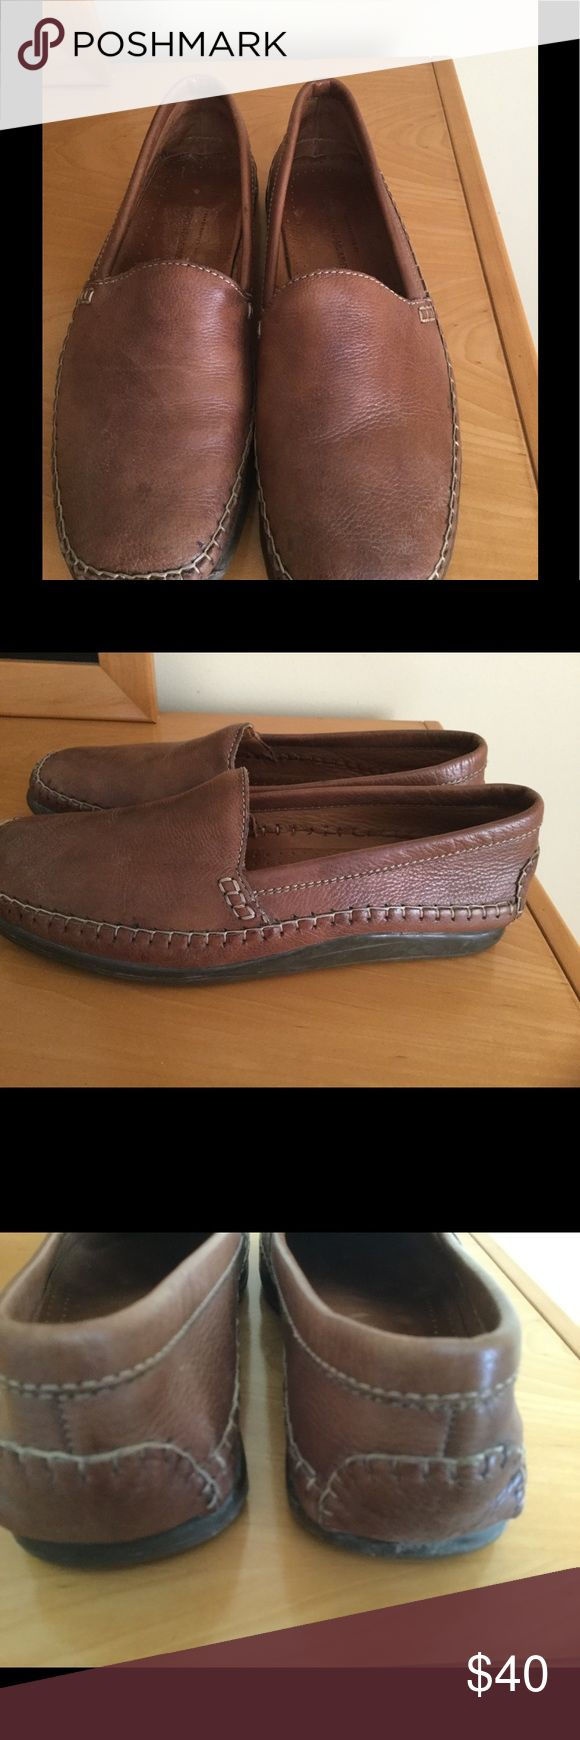 Johnston & Murphy brown leather driving shoes Lots of life left on them , no major problems handcraft by Johnston & Murphy brown leather slip on boat shoes ❌Price firm unless bundled . Johnston & Murphy Shoes Flats & Loafers